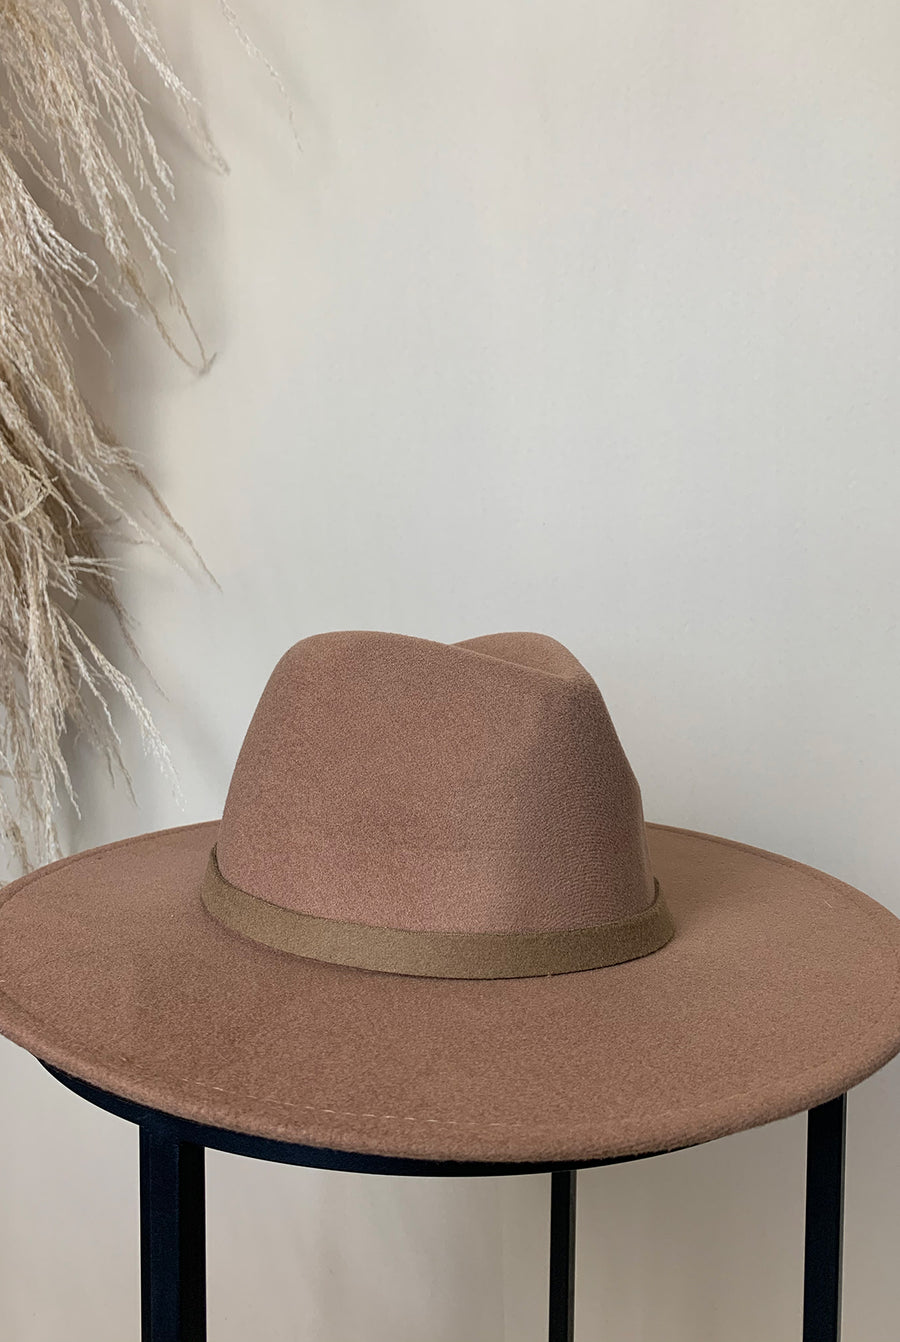 camel brown felt fedora hat